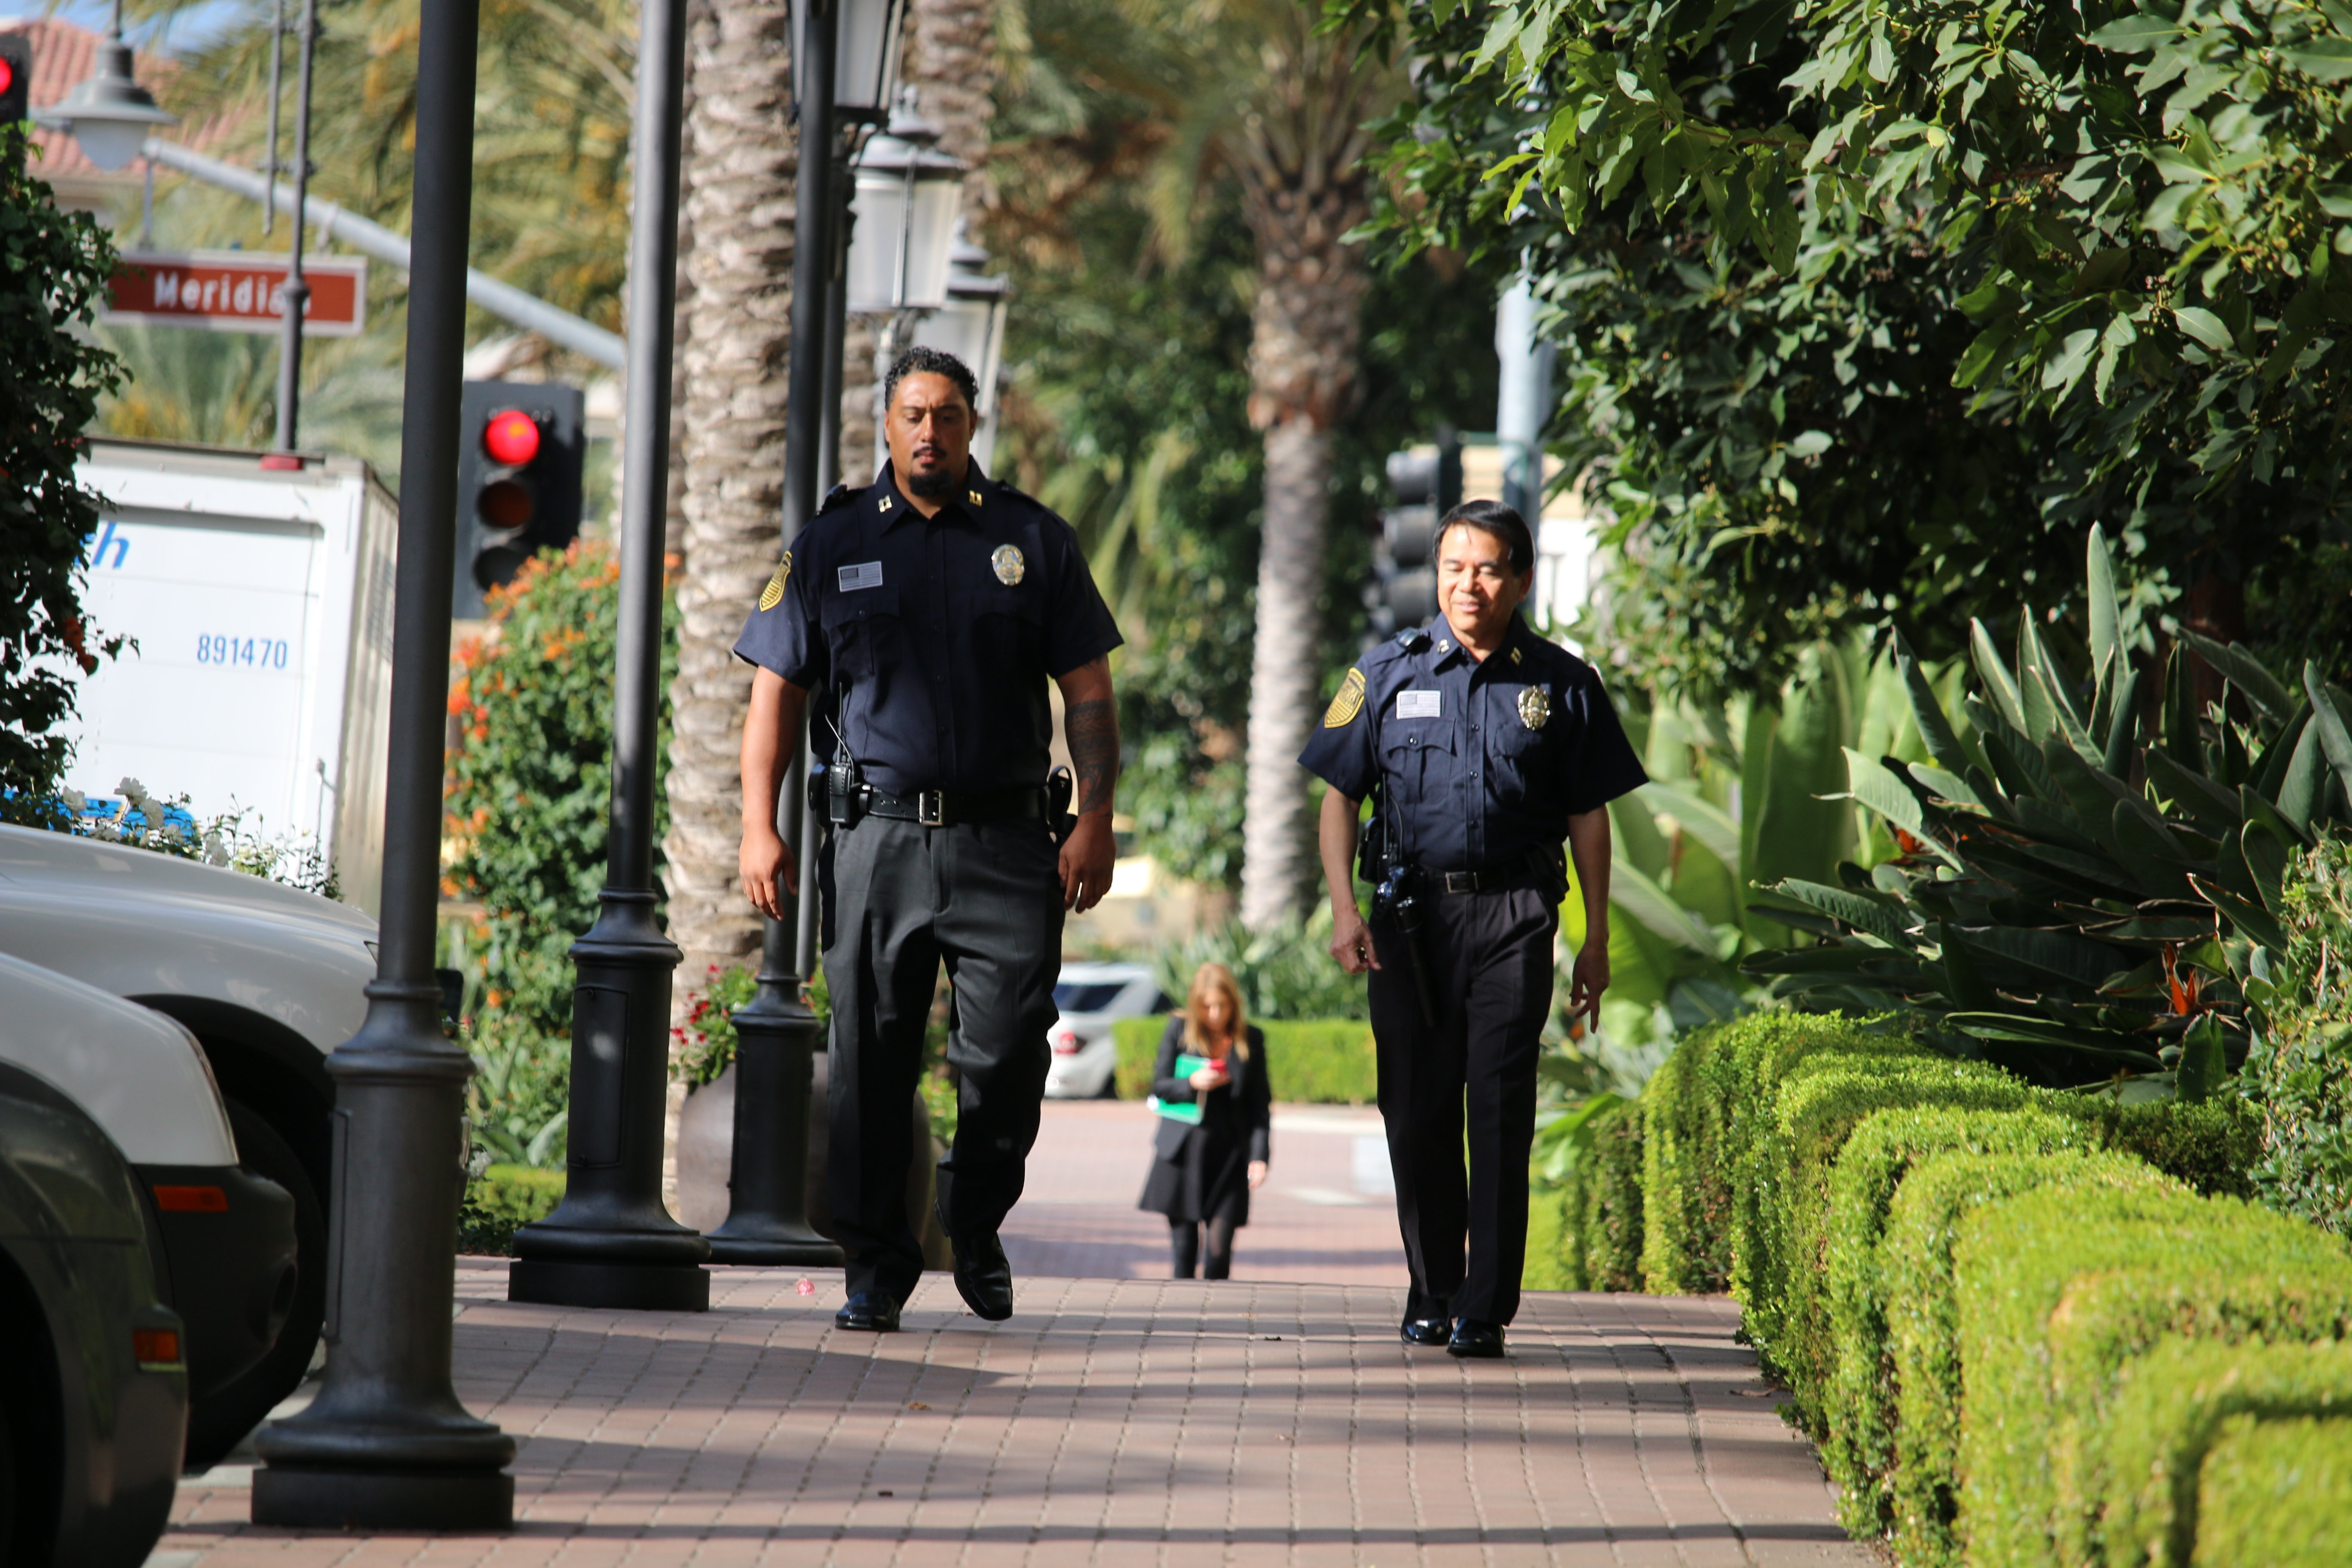 Security Guards for Commercial Property